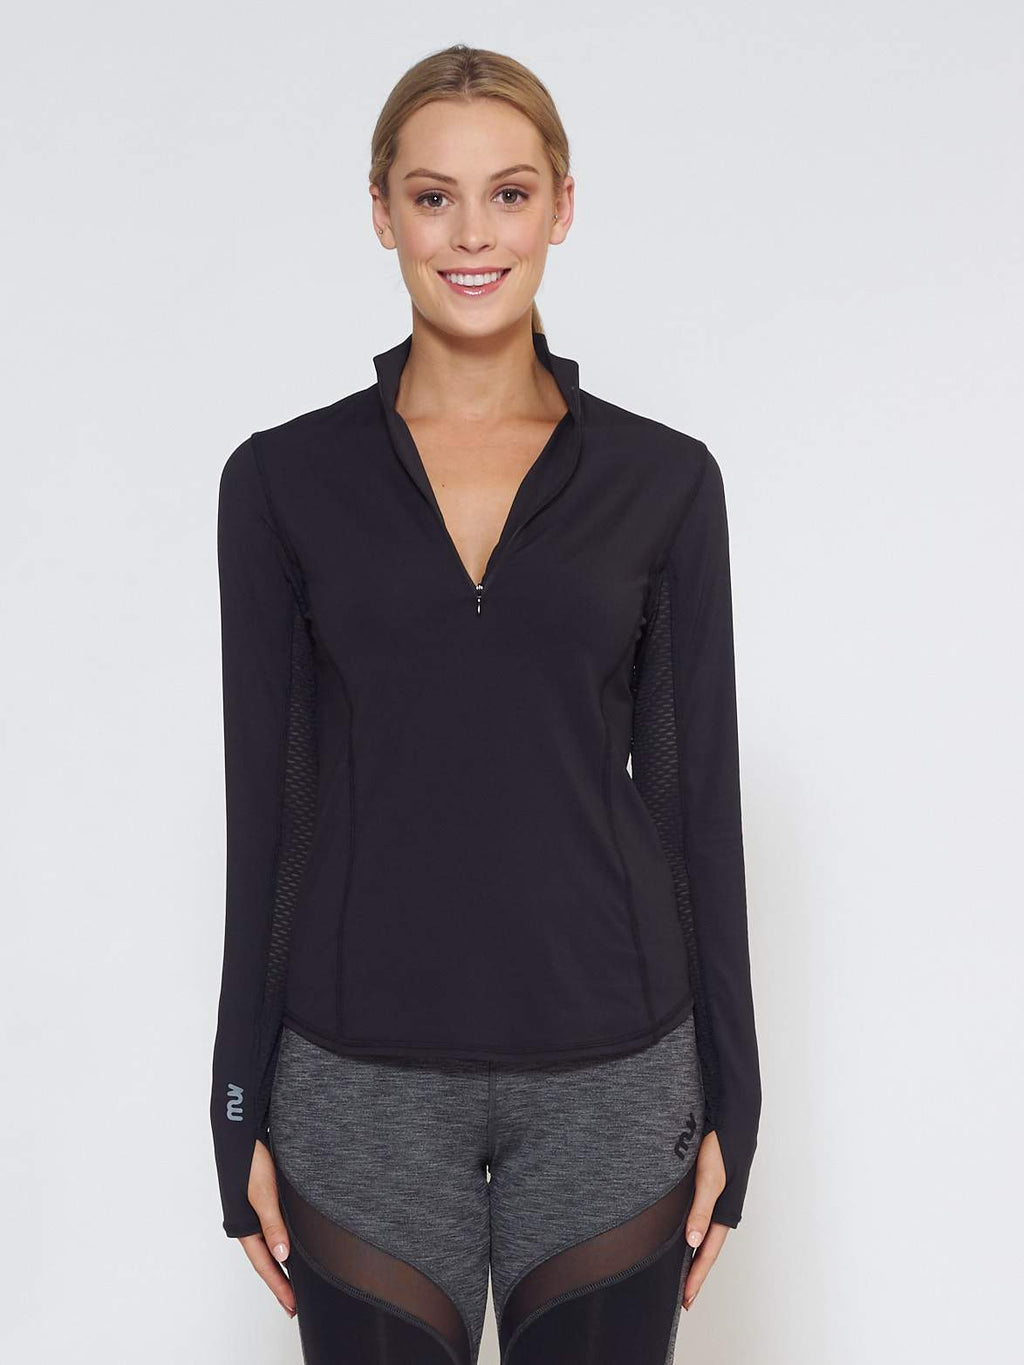 MUV Sportswear Long Sleeve Top LIQUID Long-Sleeve Collared Shirt - Black